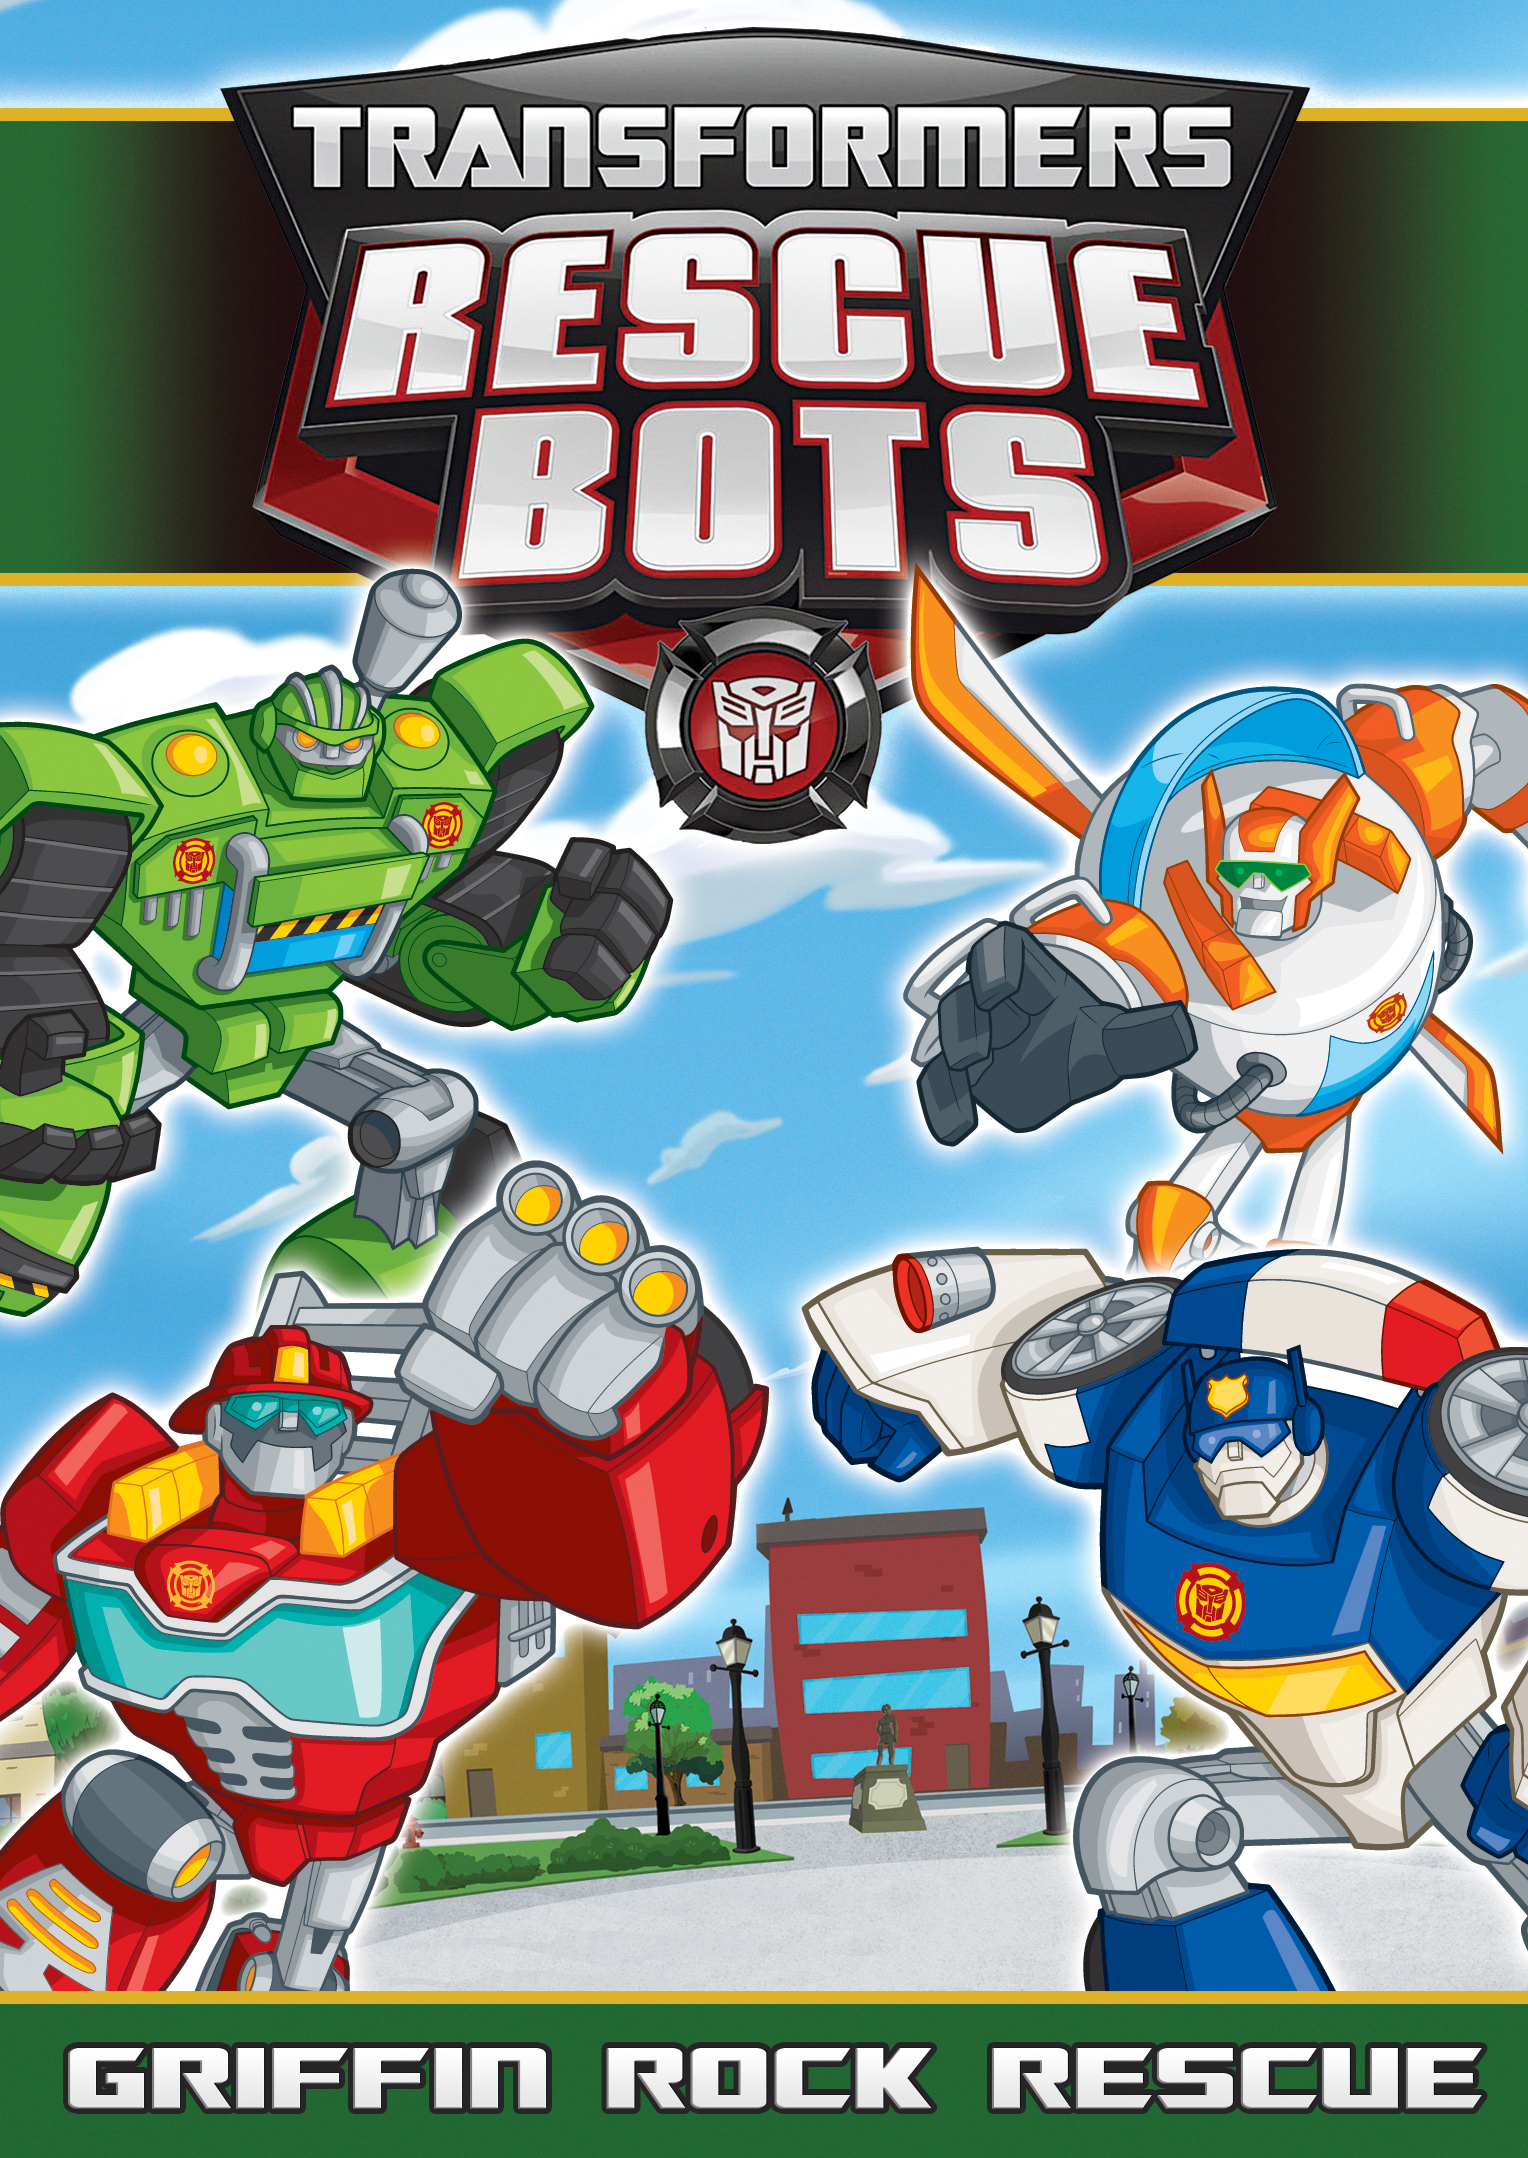 Transformers Fall Of Cybertron Wallpaper Hd Transformers Rescue Bots Griffin Rock Rescue Shout